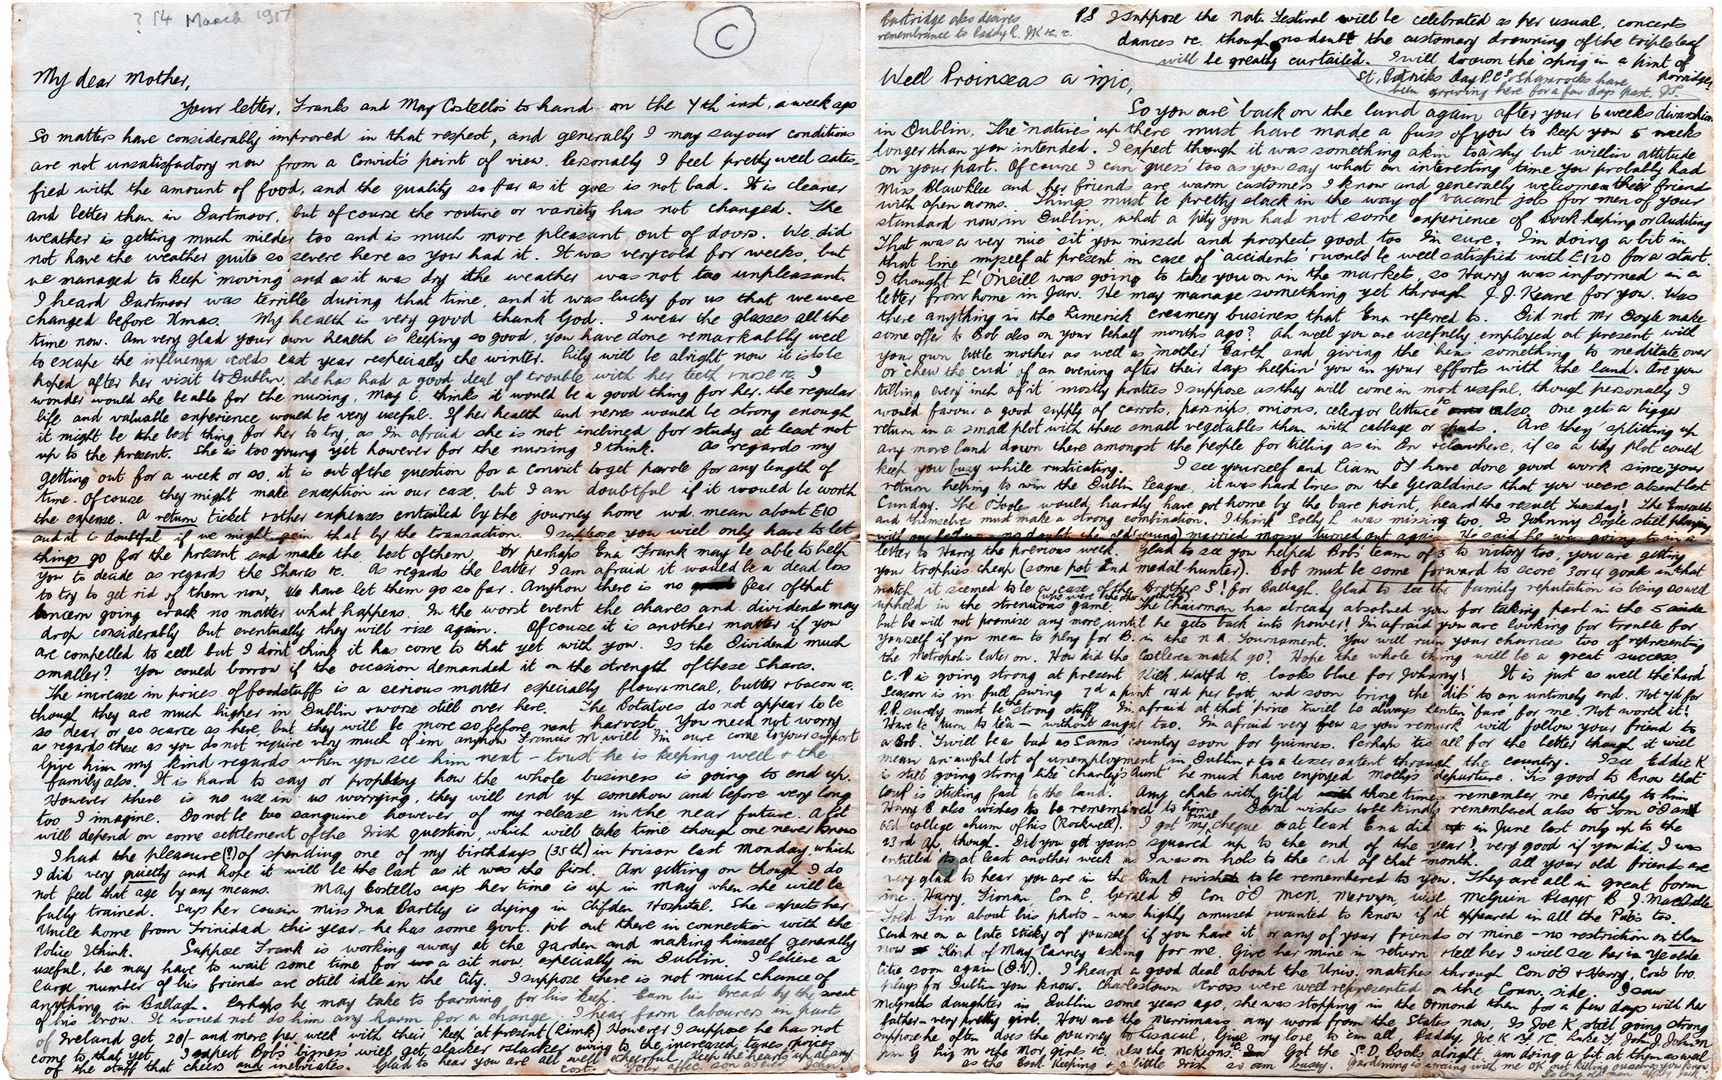 Jack's third letter sent inMarch, 1917.